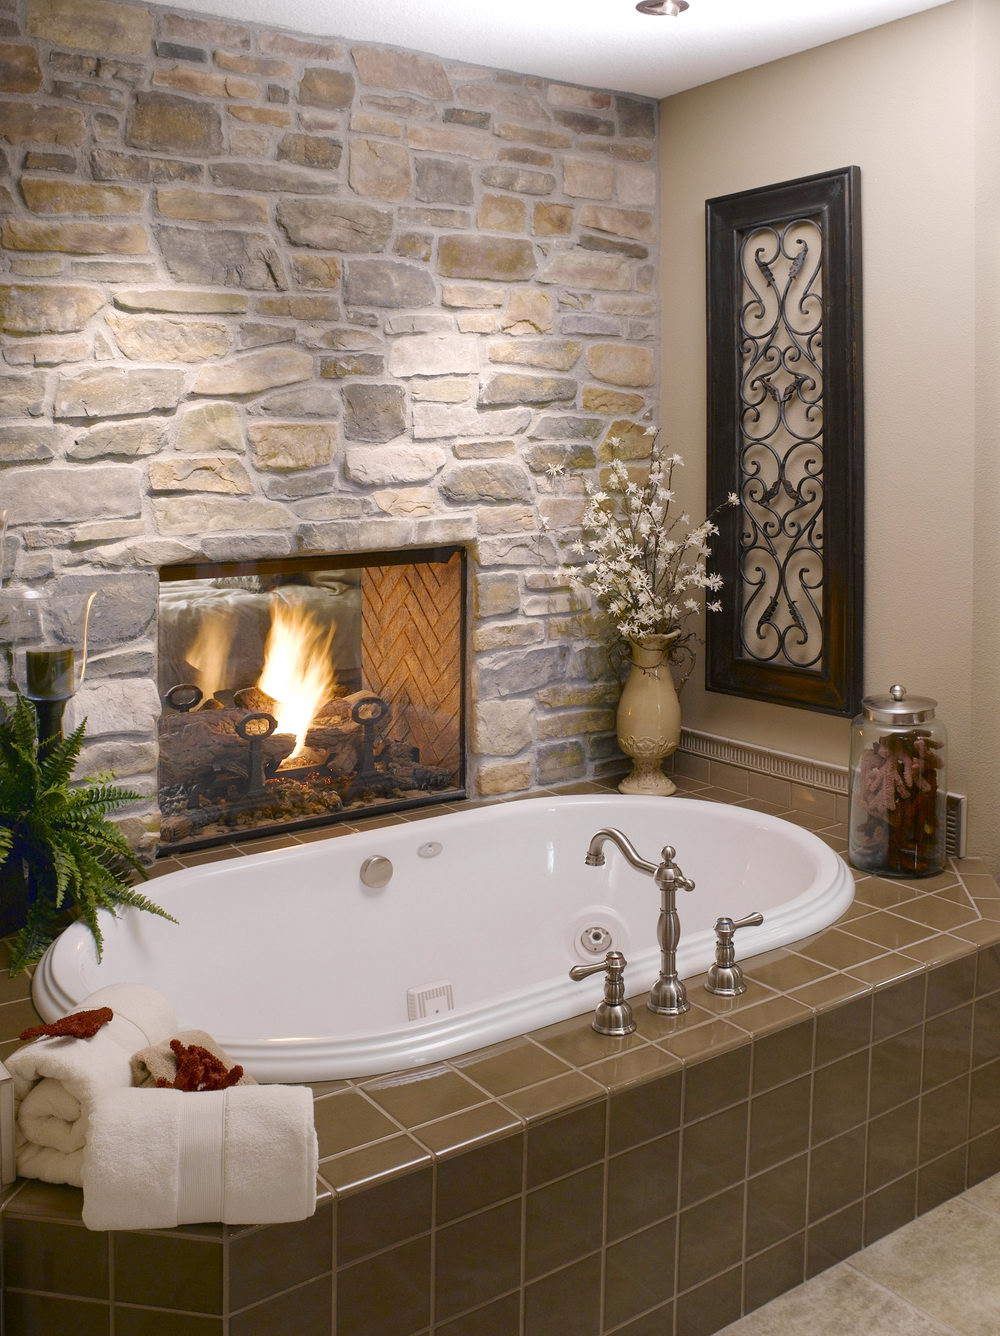 Stone Bathroom Designs The Best Natural Bathroom Stone Tile Decorideasbathroom